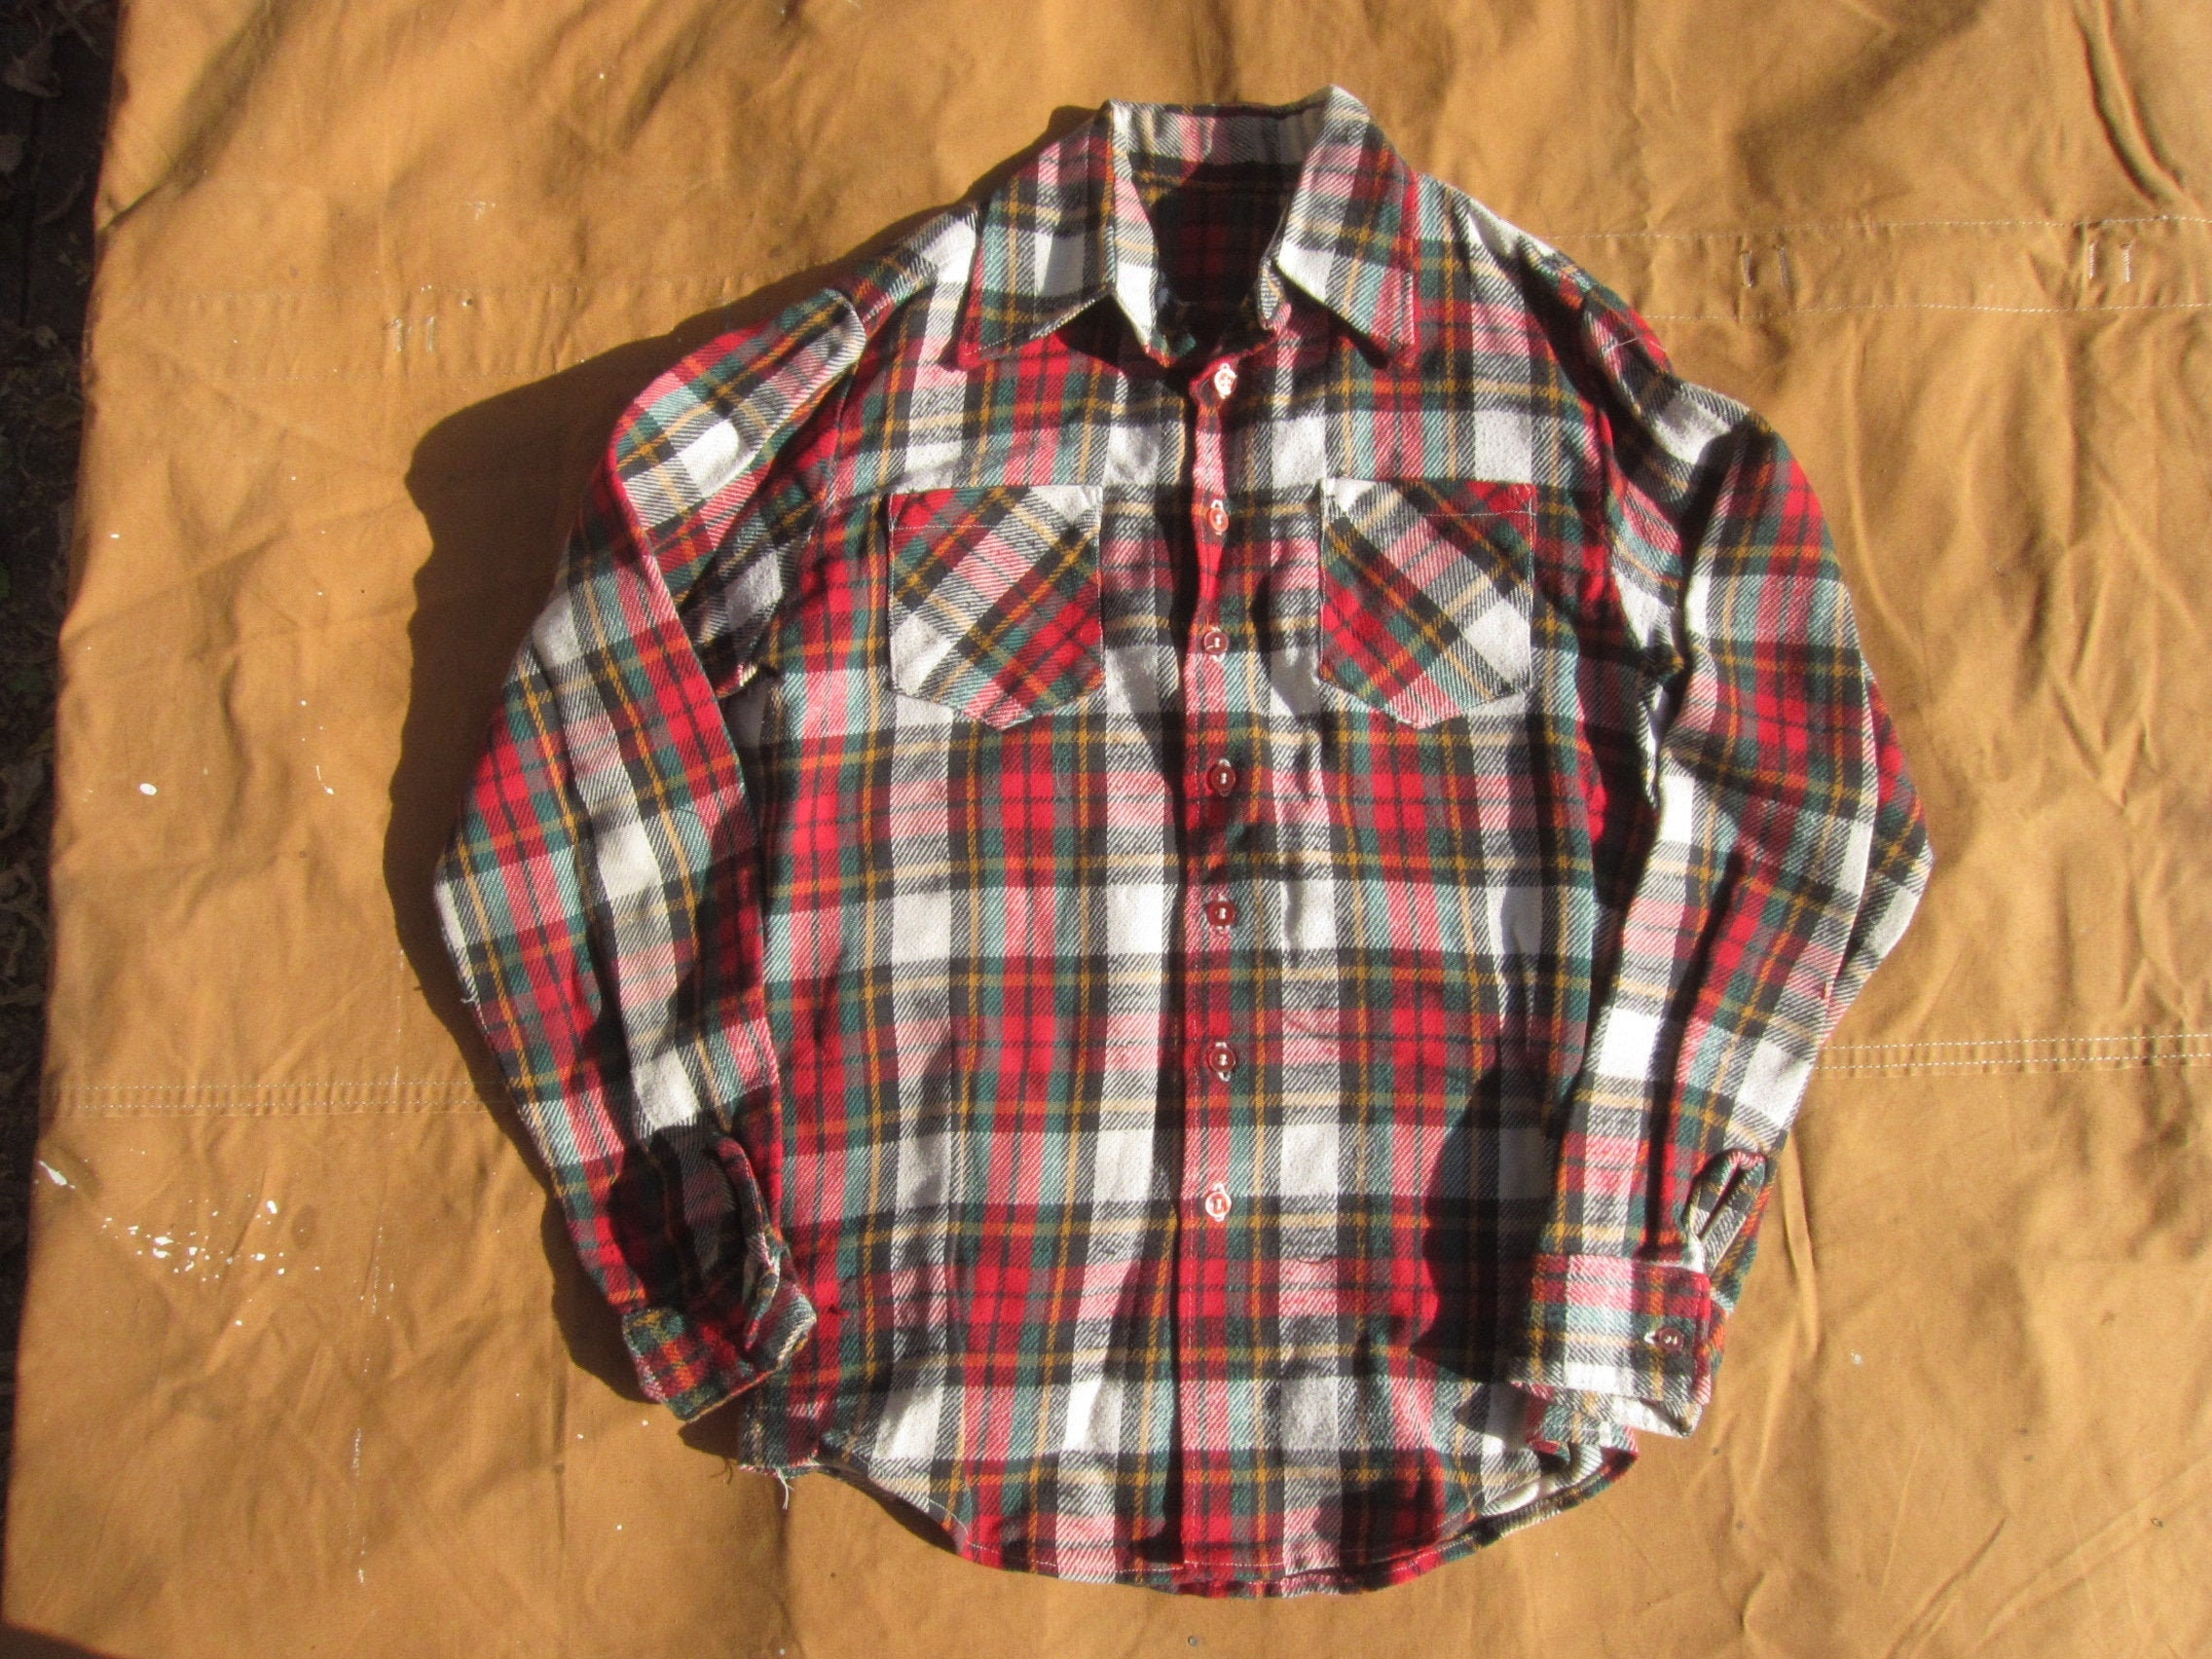 1970s Men's Shirt Styles – Vintage 70s Shirts for Guys MediumLarge Tall 70S Handmade Plaid Shirt Cotton, Flannel, Button Up Down, Red Green White, Soft, Two Pocket Work $35.00 AT vintagedancer.com